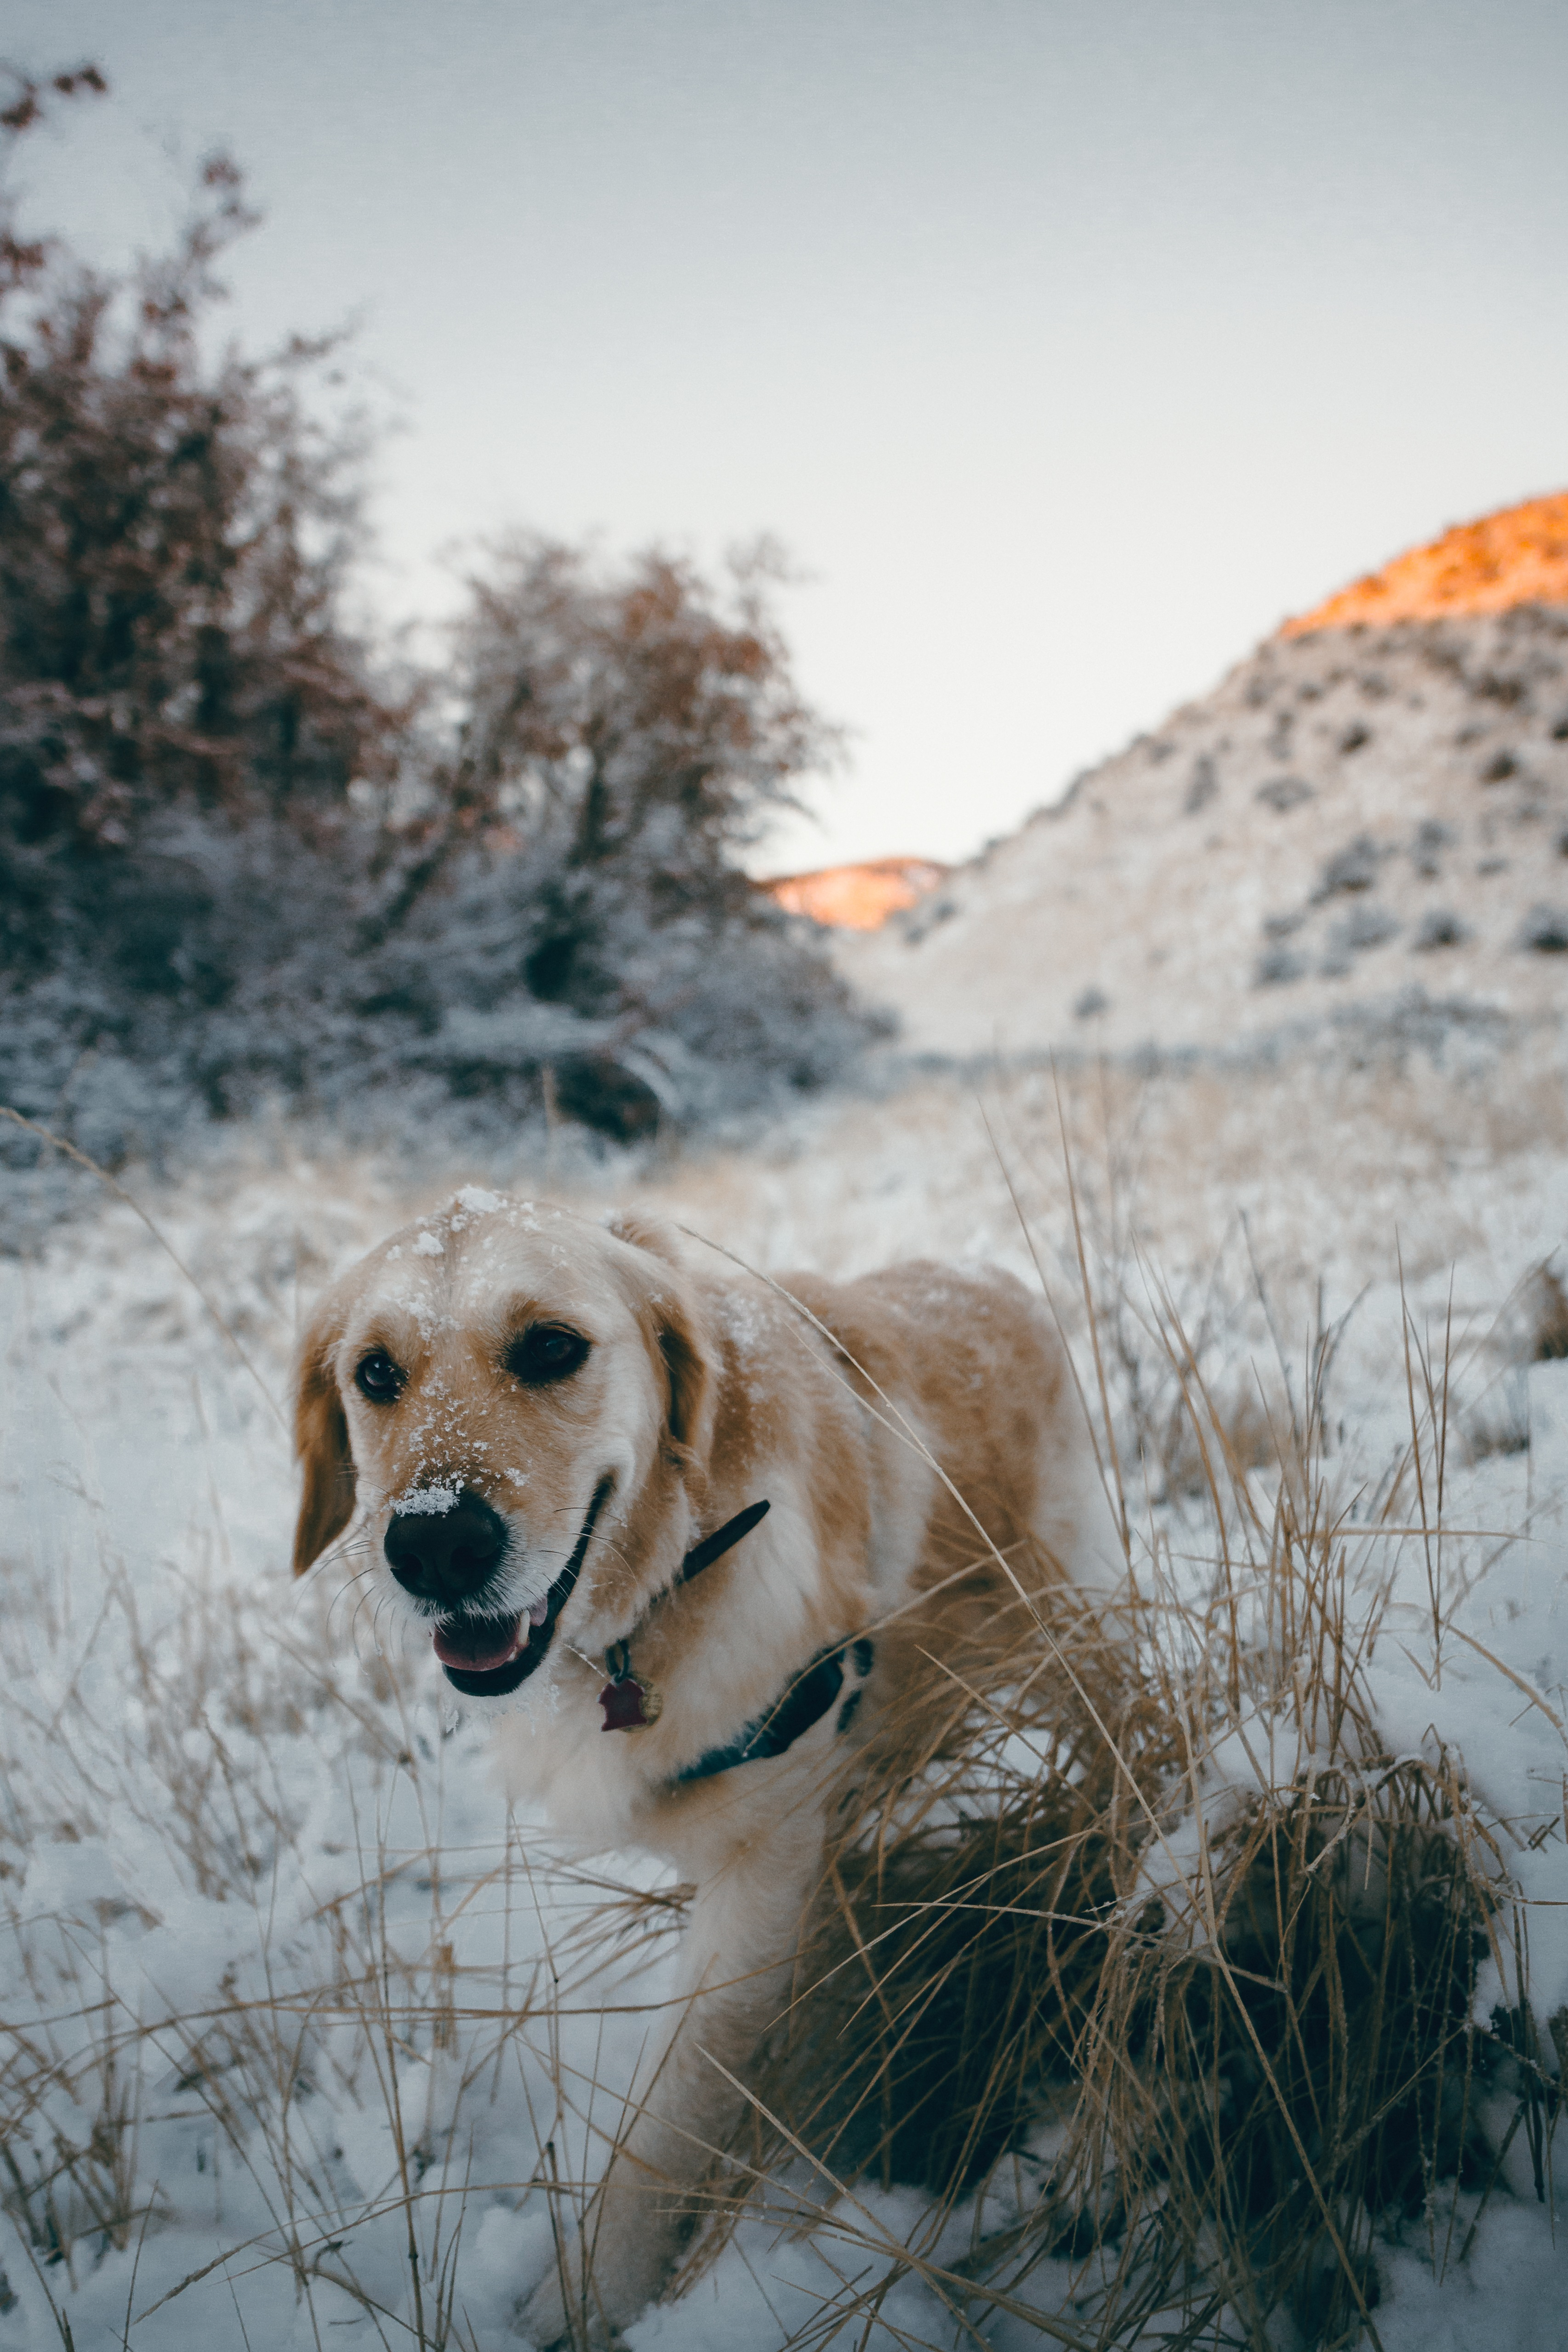 dog with snow on it